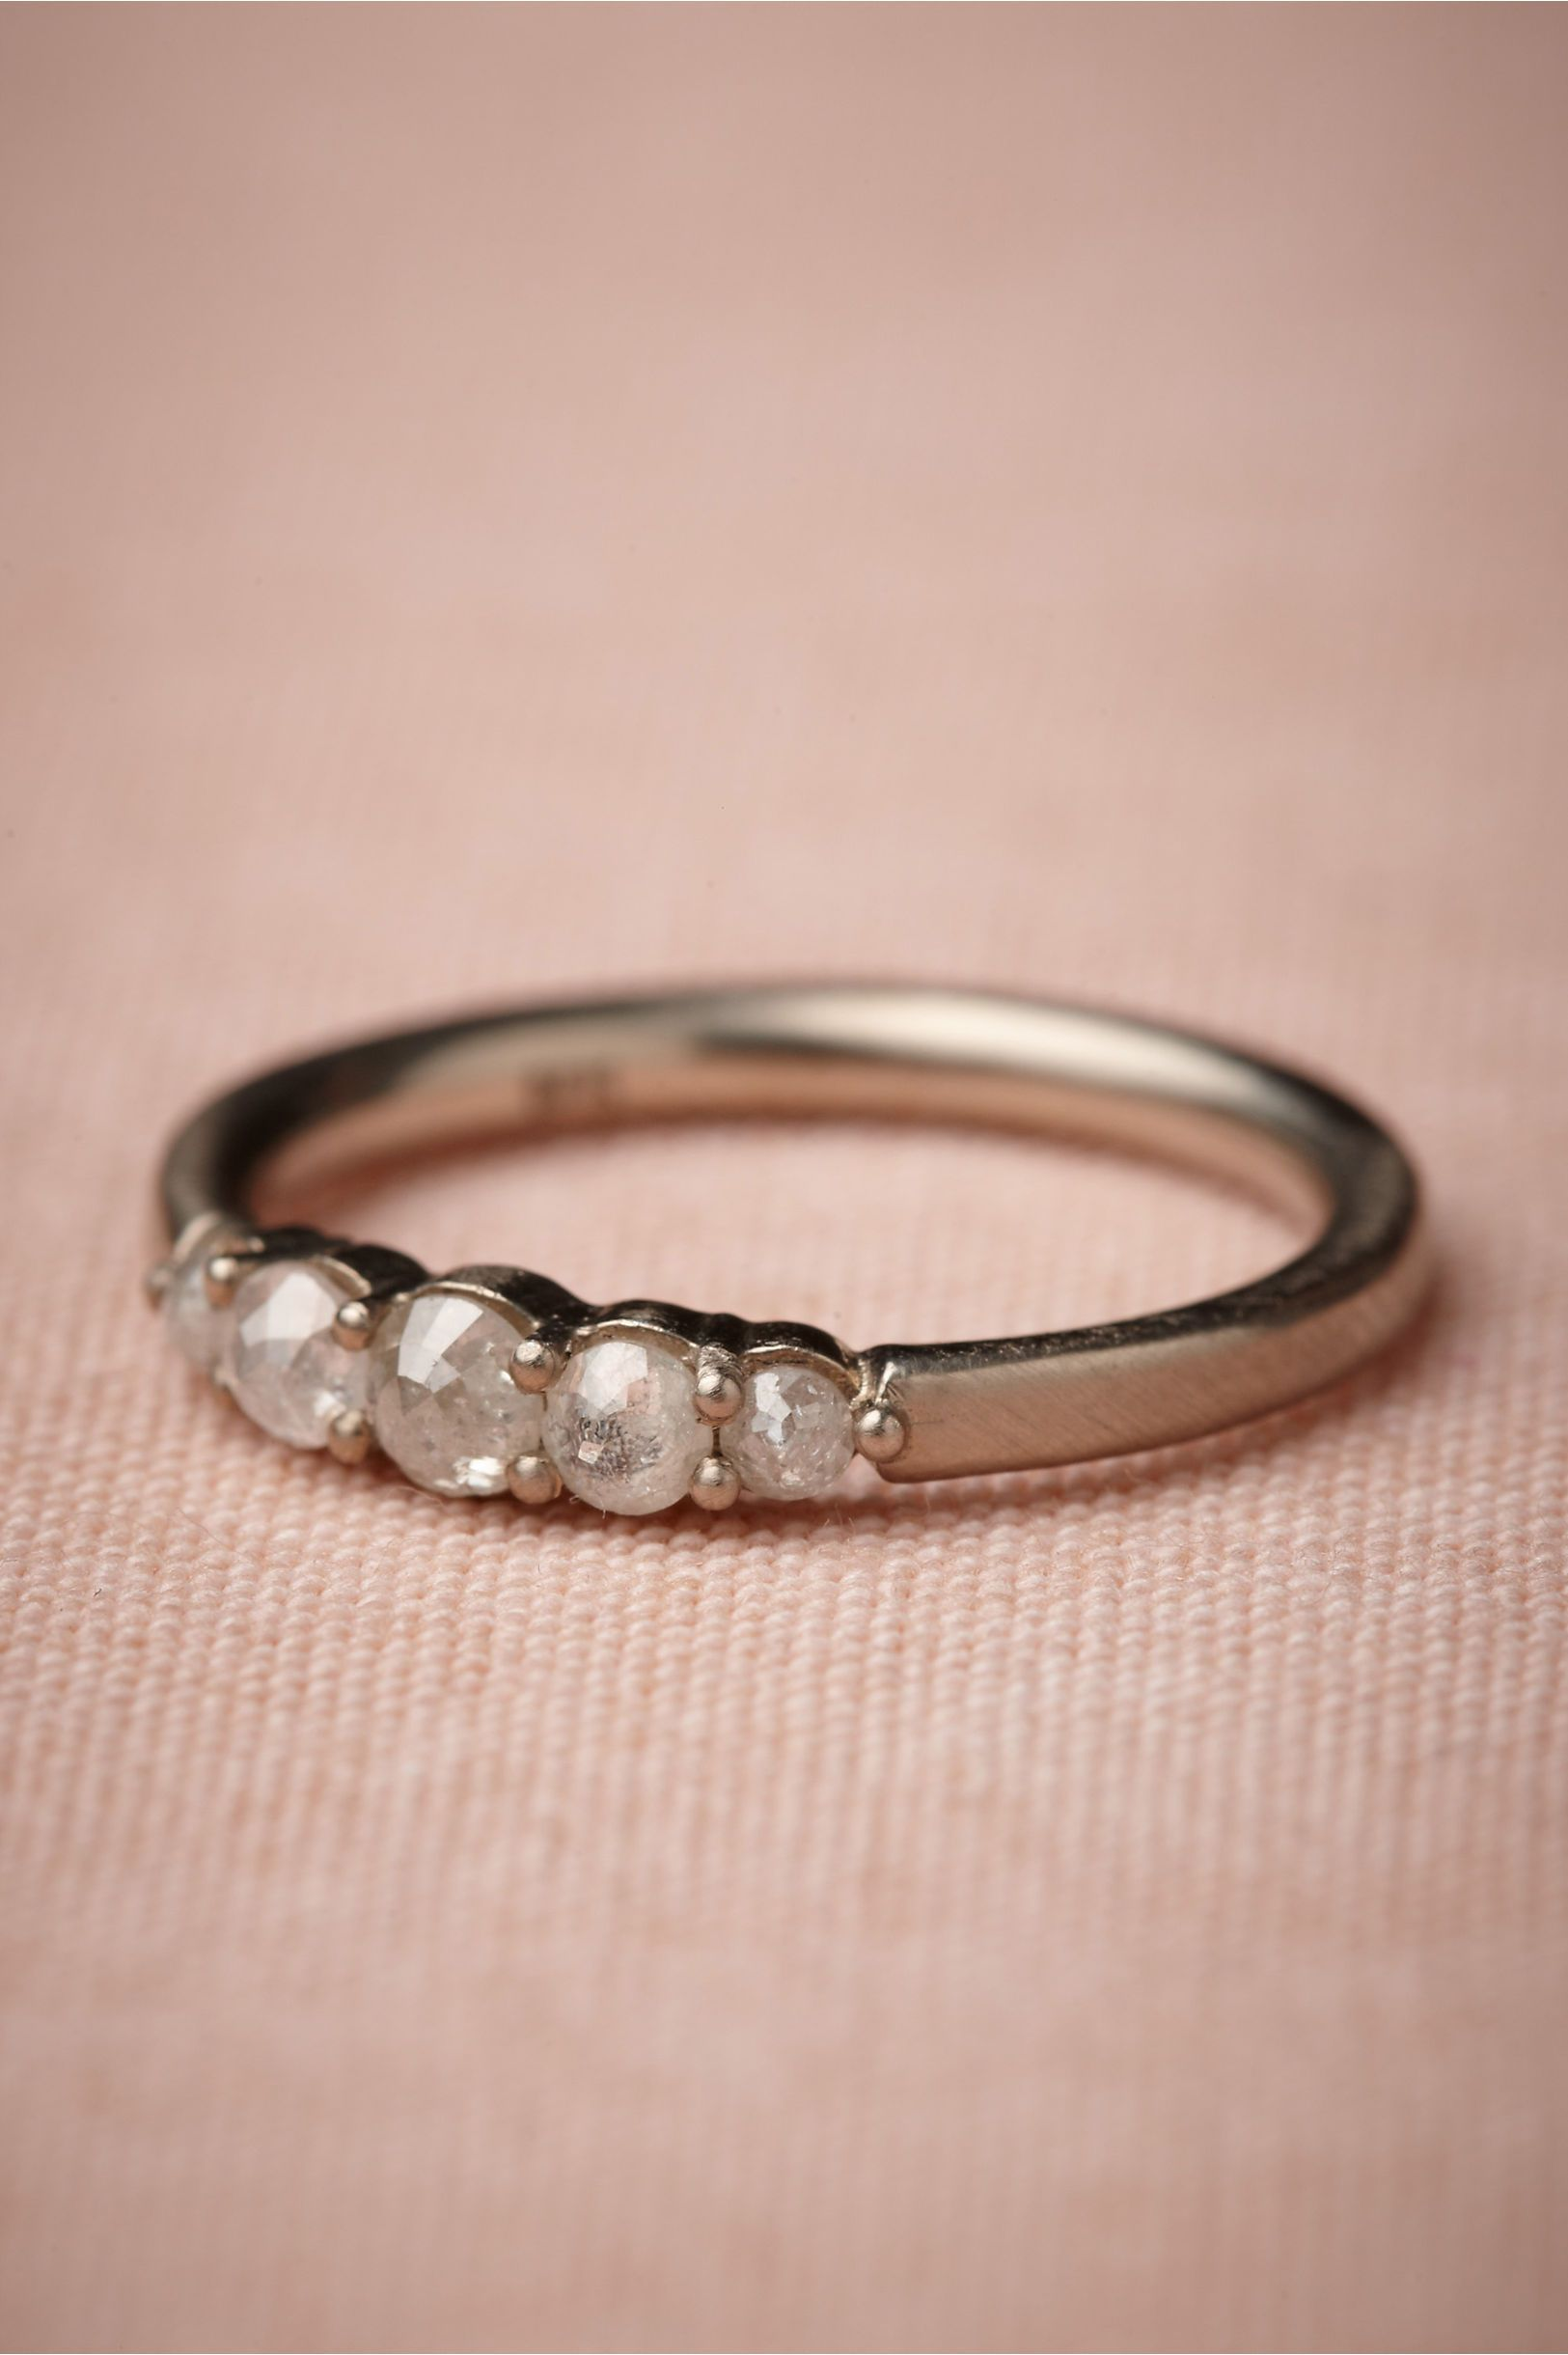 engagement it ring shop where friendly rings put ethical to on eco an and